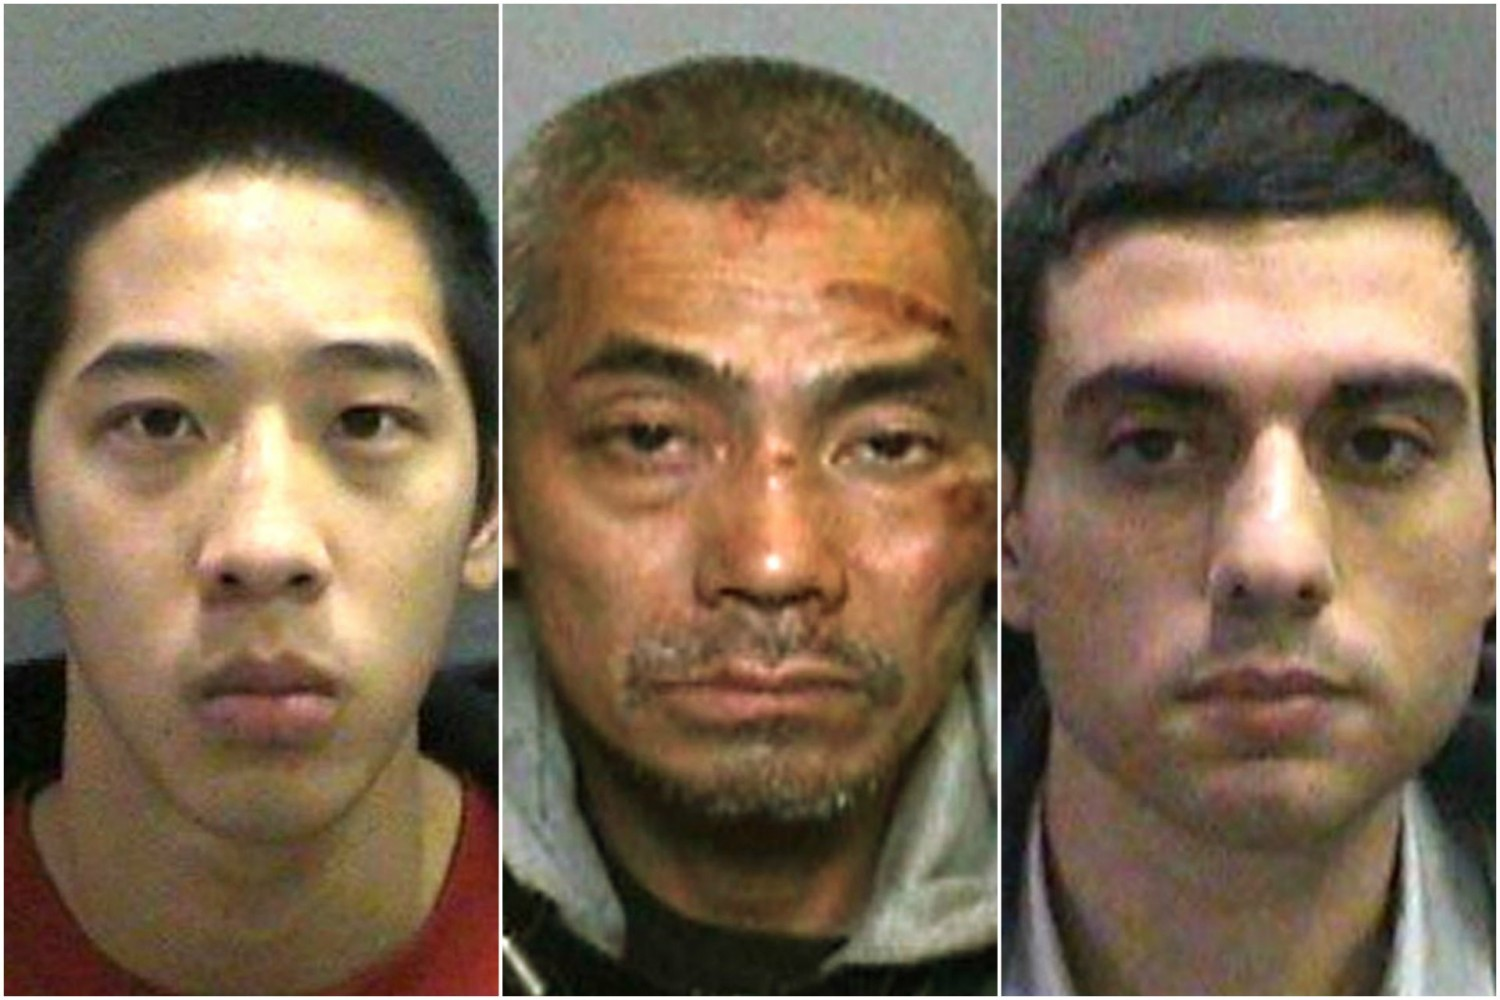 Bac Duong, 1 of 3 Inmates Who Escaped Orange County Jail, In